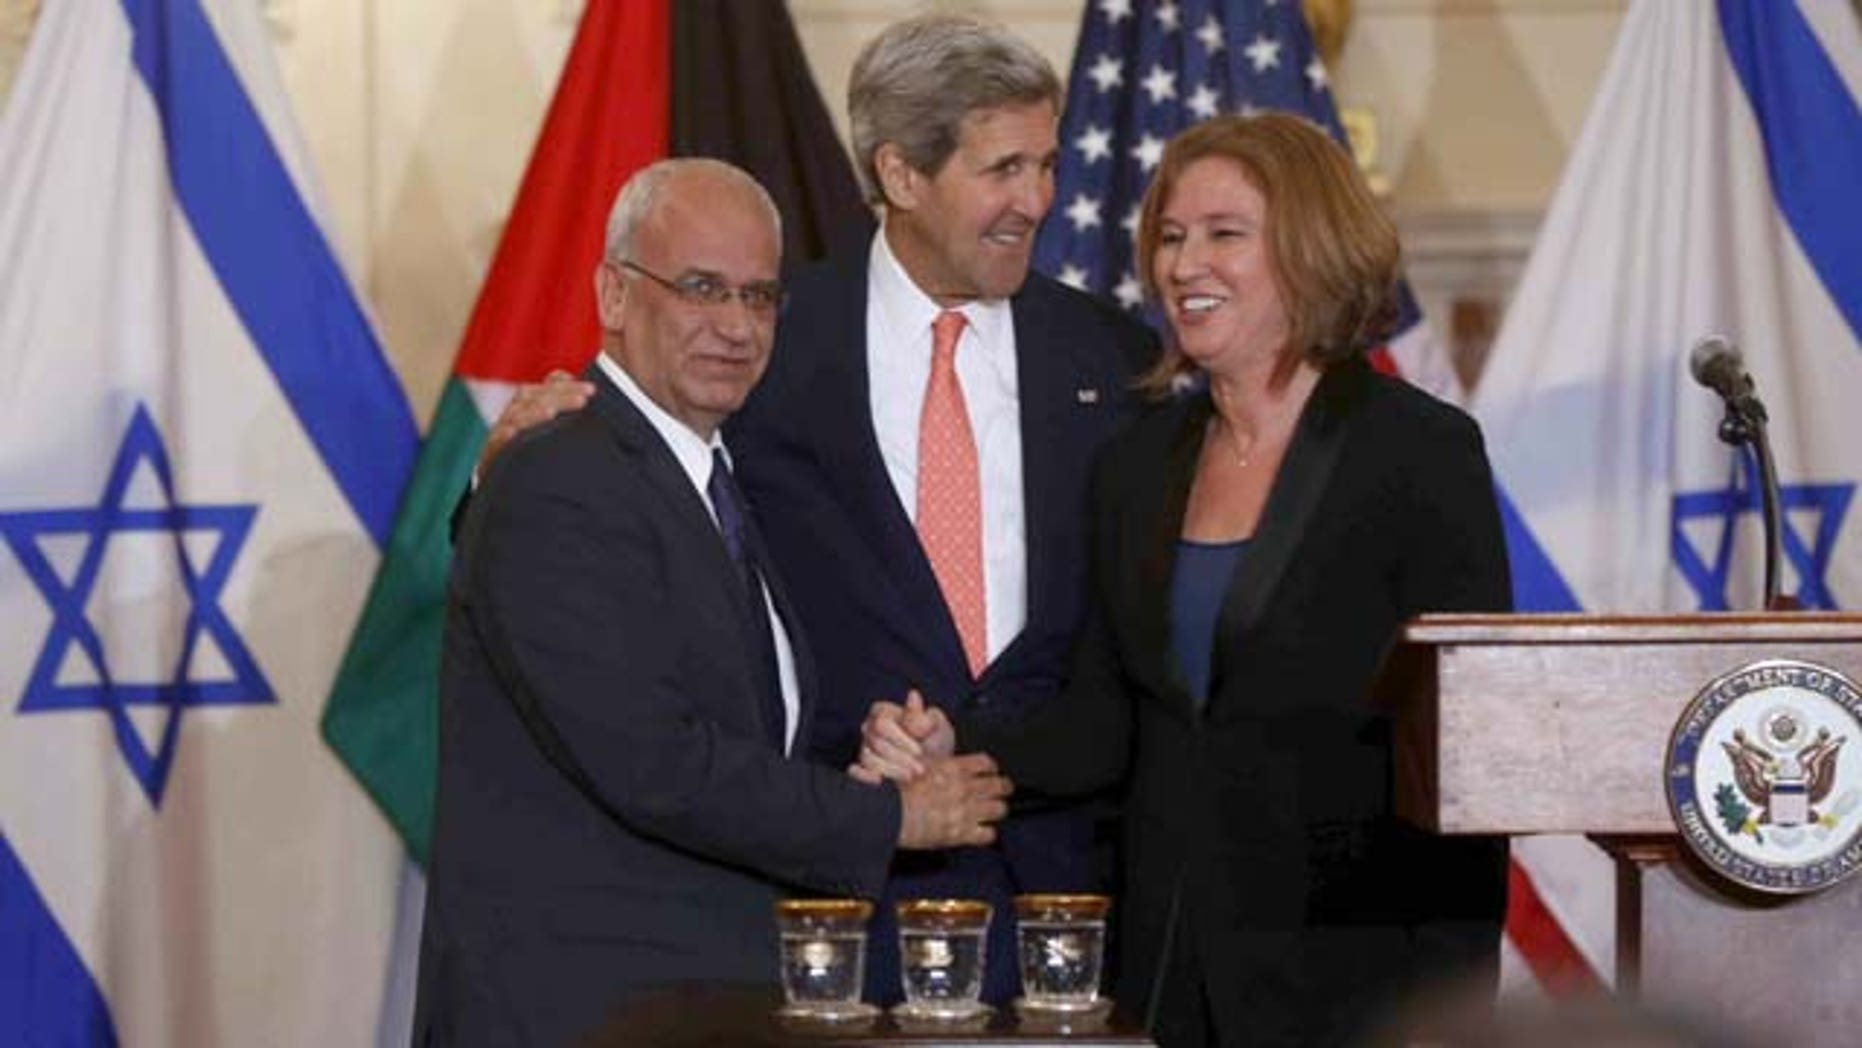 July 30, 2013: Secretary of State John Kerry stands with Israel's Justice Minister and chief negotiator Tzipi Livni, right, and Palestinian chief negotiator Saeb Erekat, after the resumption of Israeli-Palestinian peace talks at the State Department in Washington. (AP Photo)